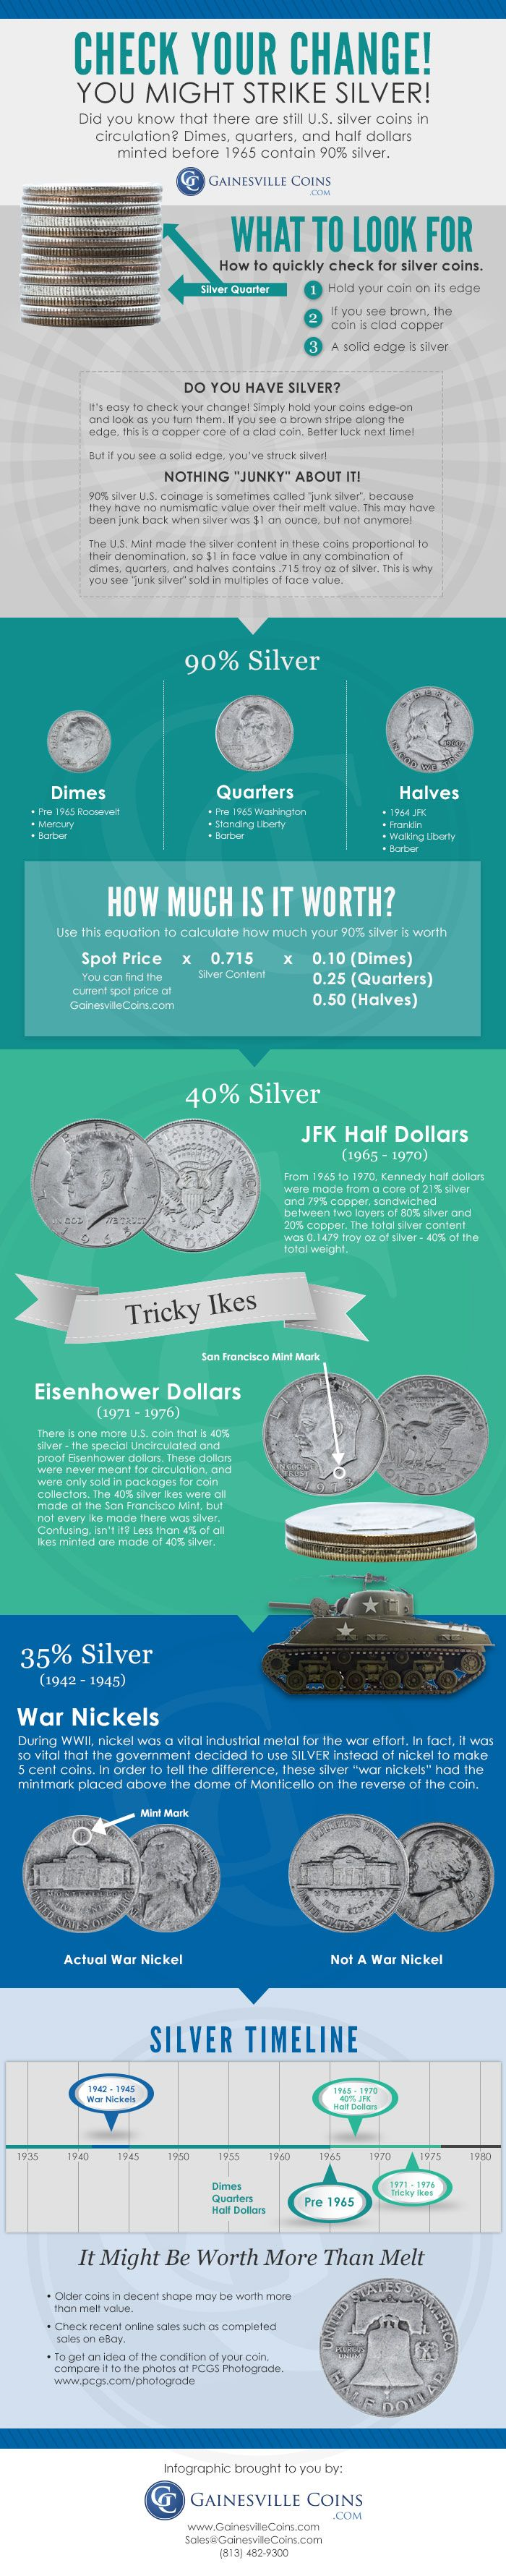 Free Shareable Infographic On Finding Real Silver Coins In Your Own Pocket…